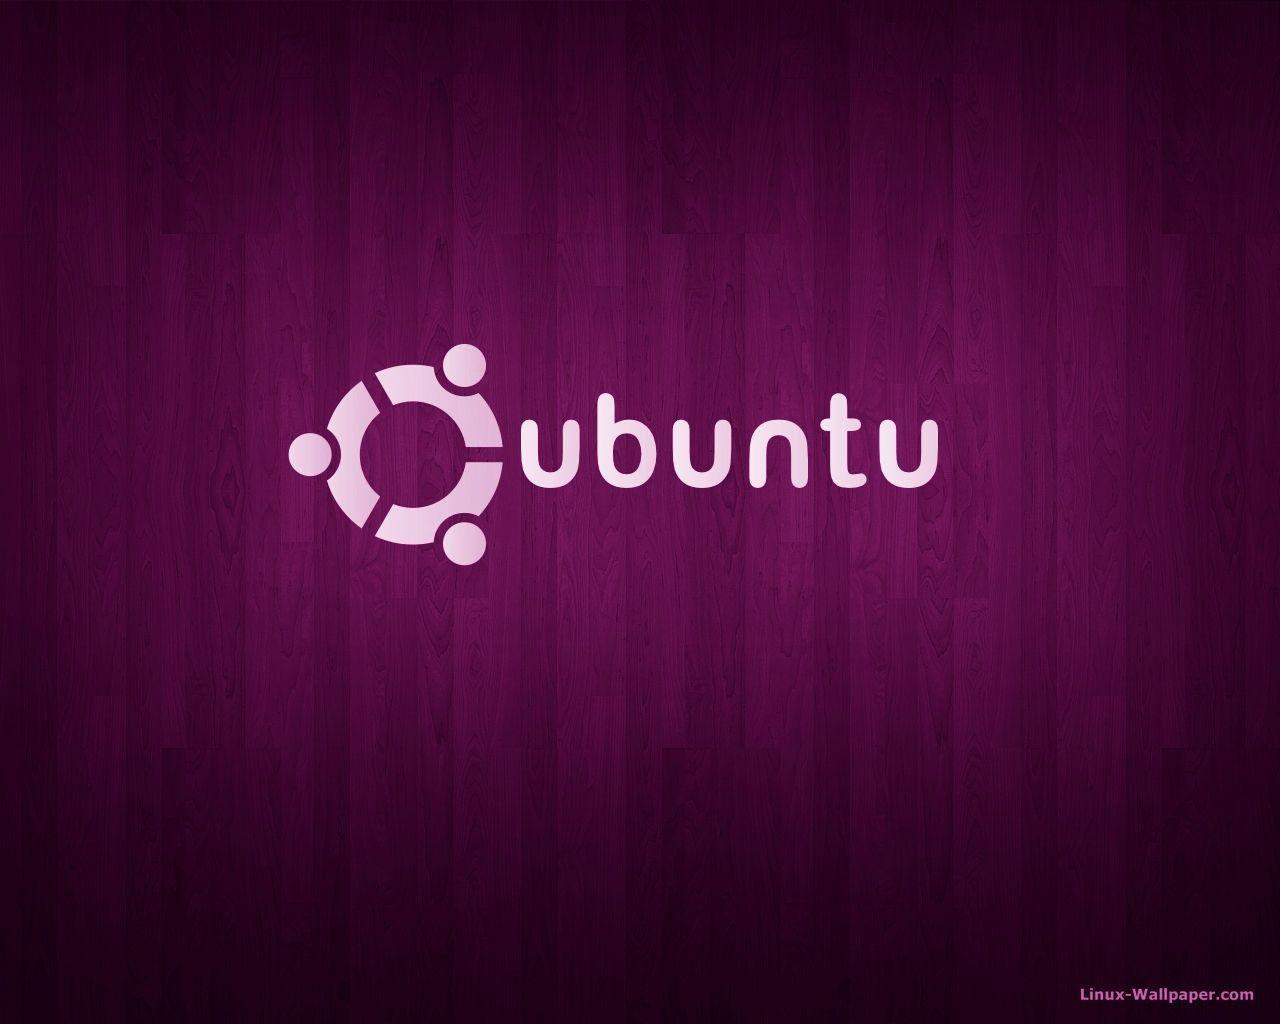 Ubuntu Wallpapers Location 1280x1024